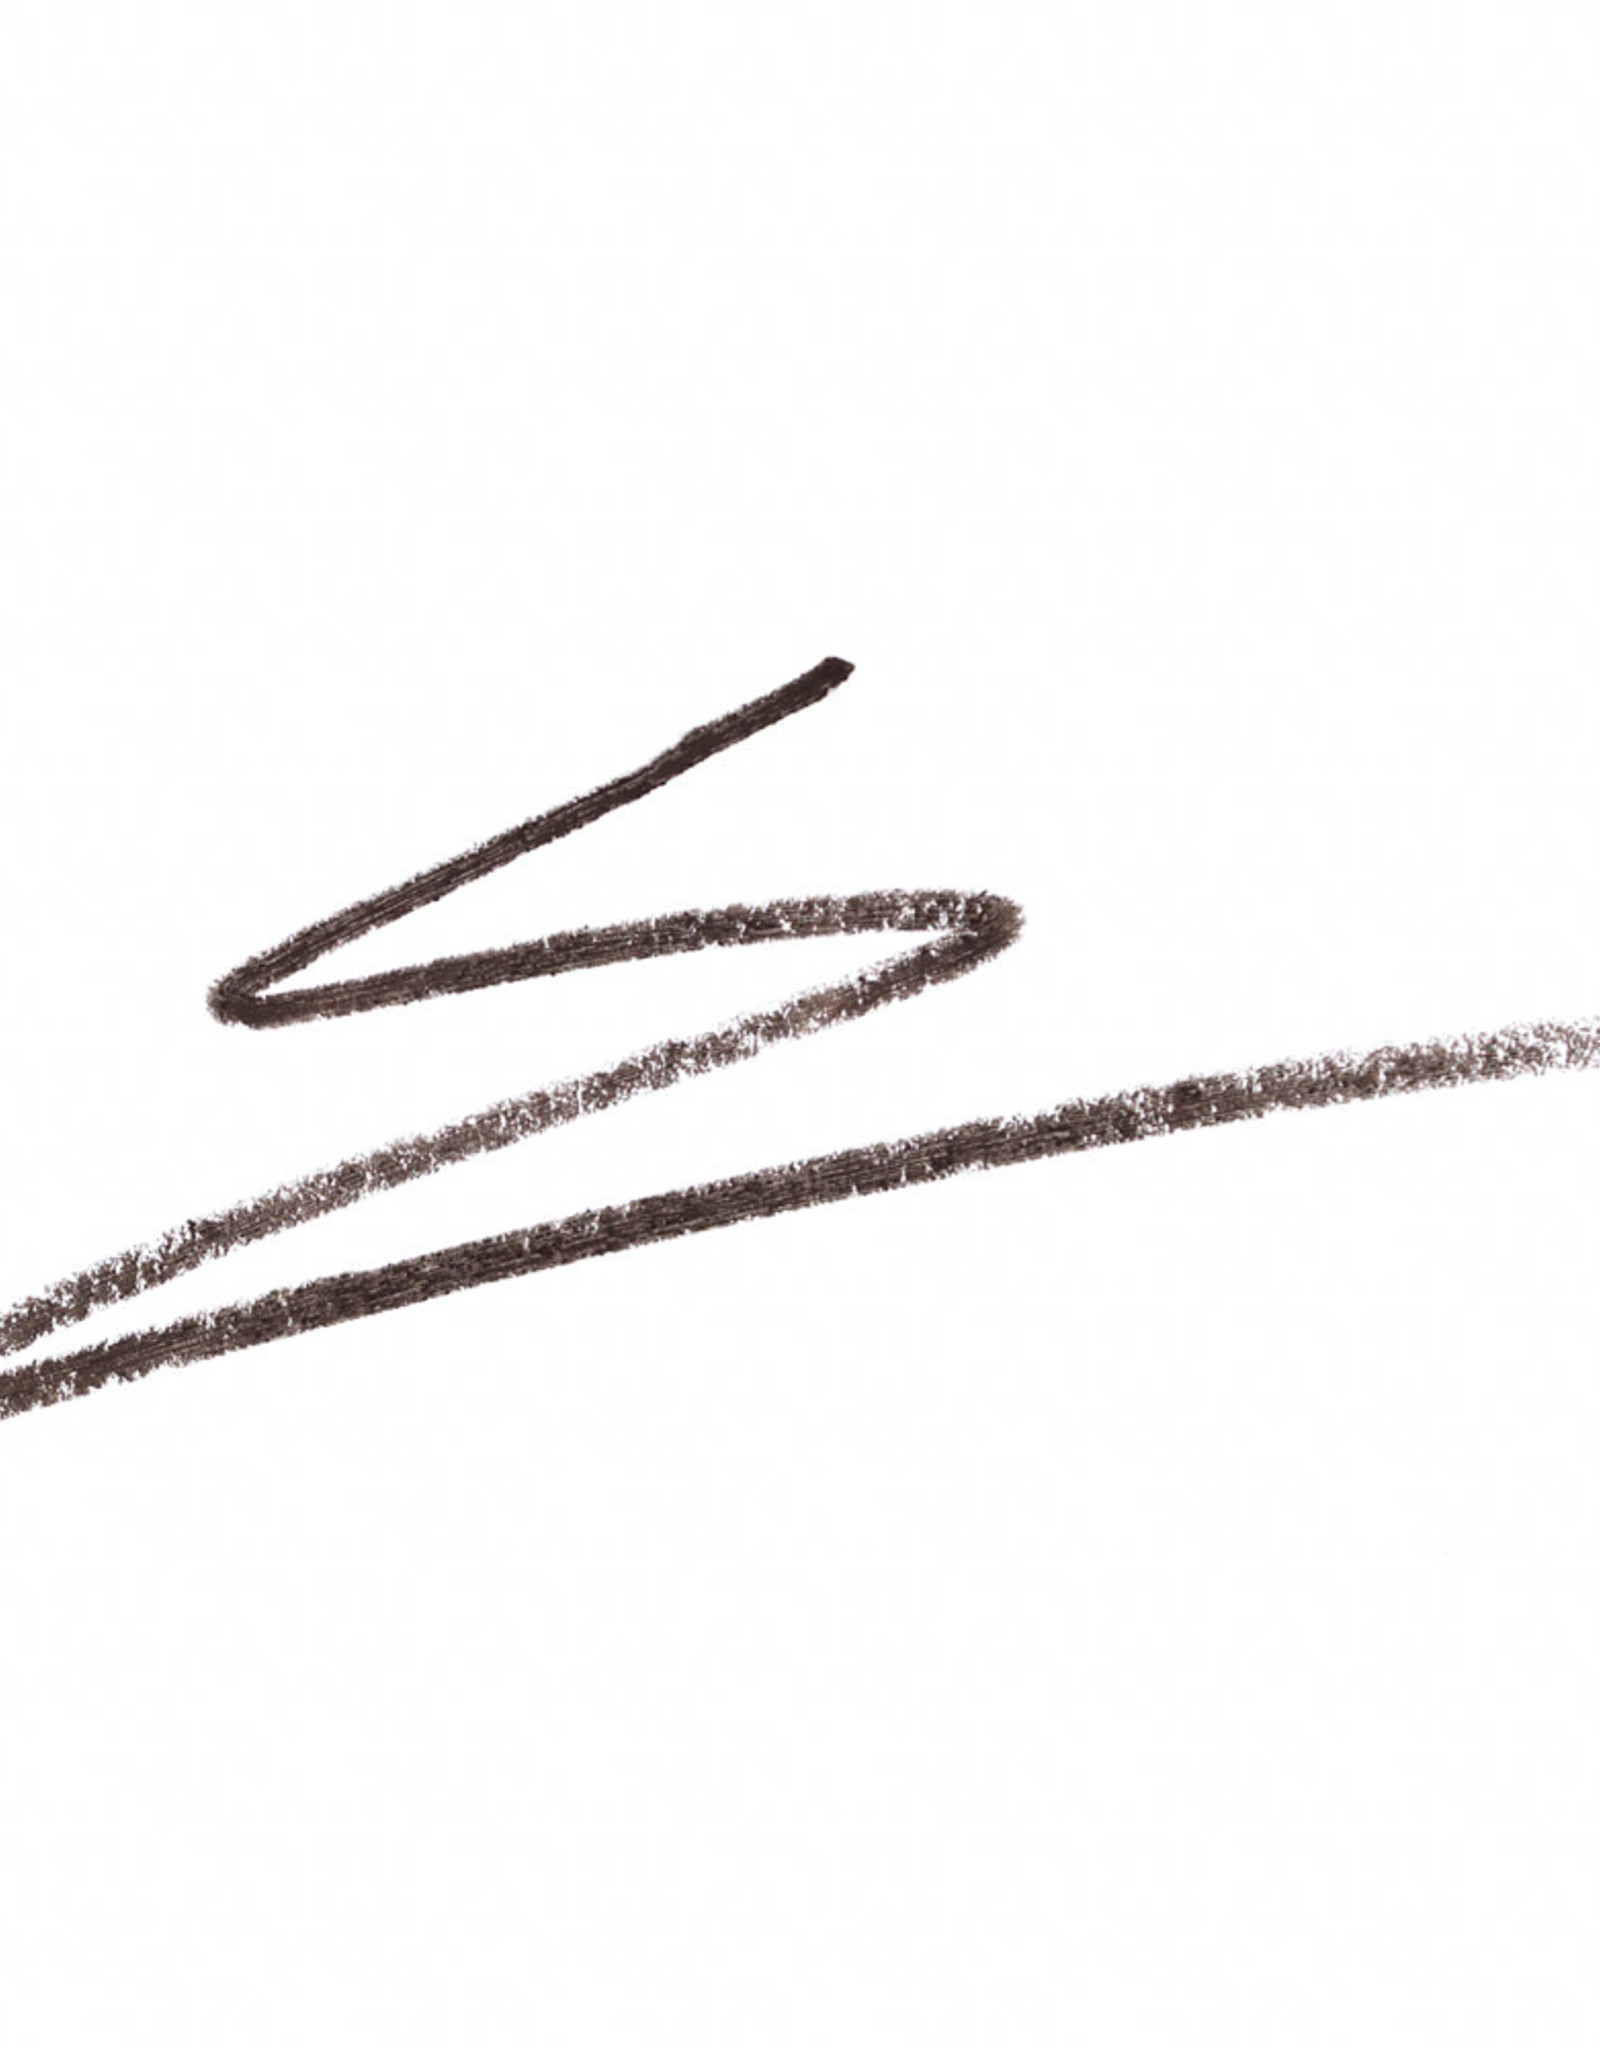 Ben Nye EYEBROW PENCIL, BLACK BROWN, .05 OZ